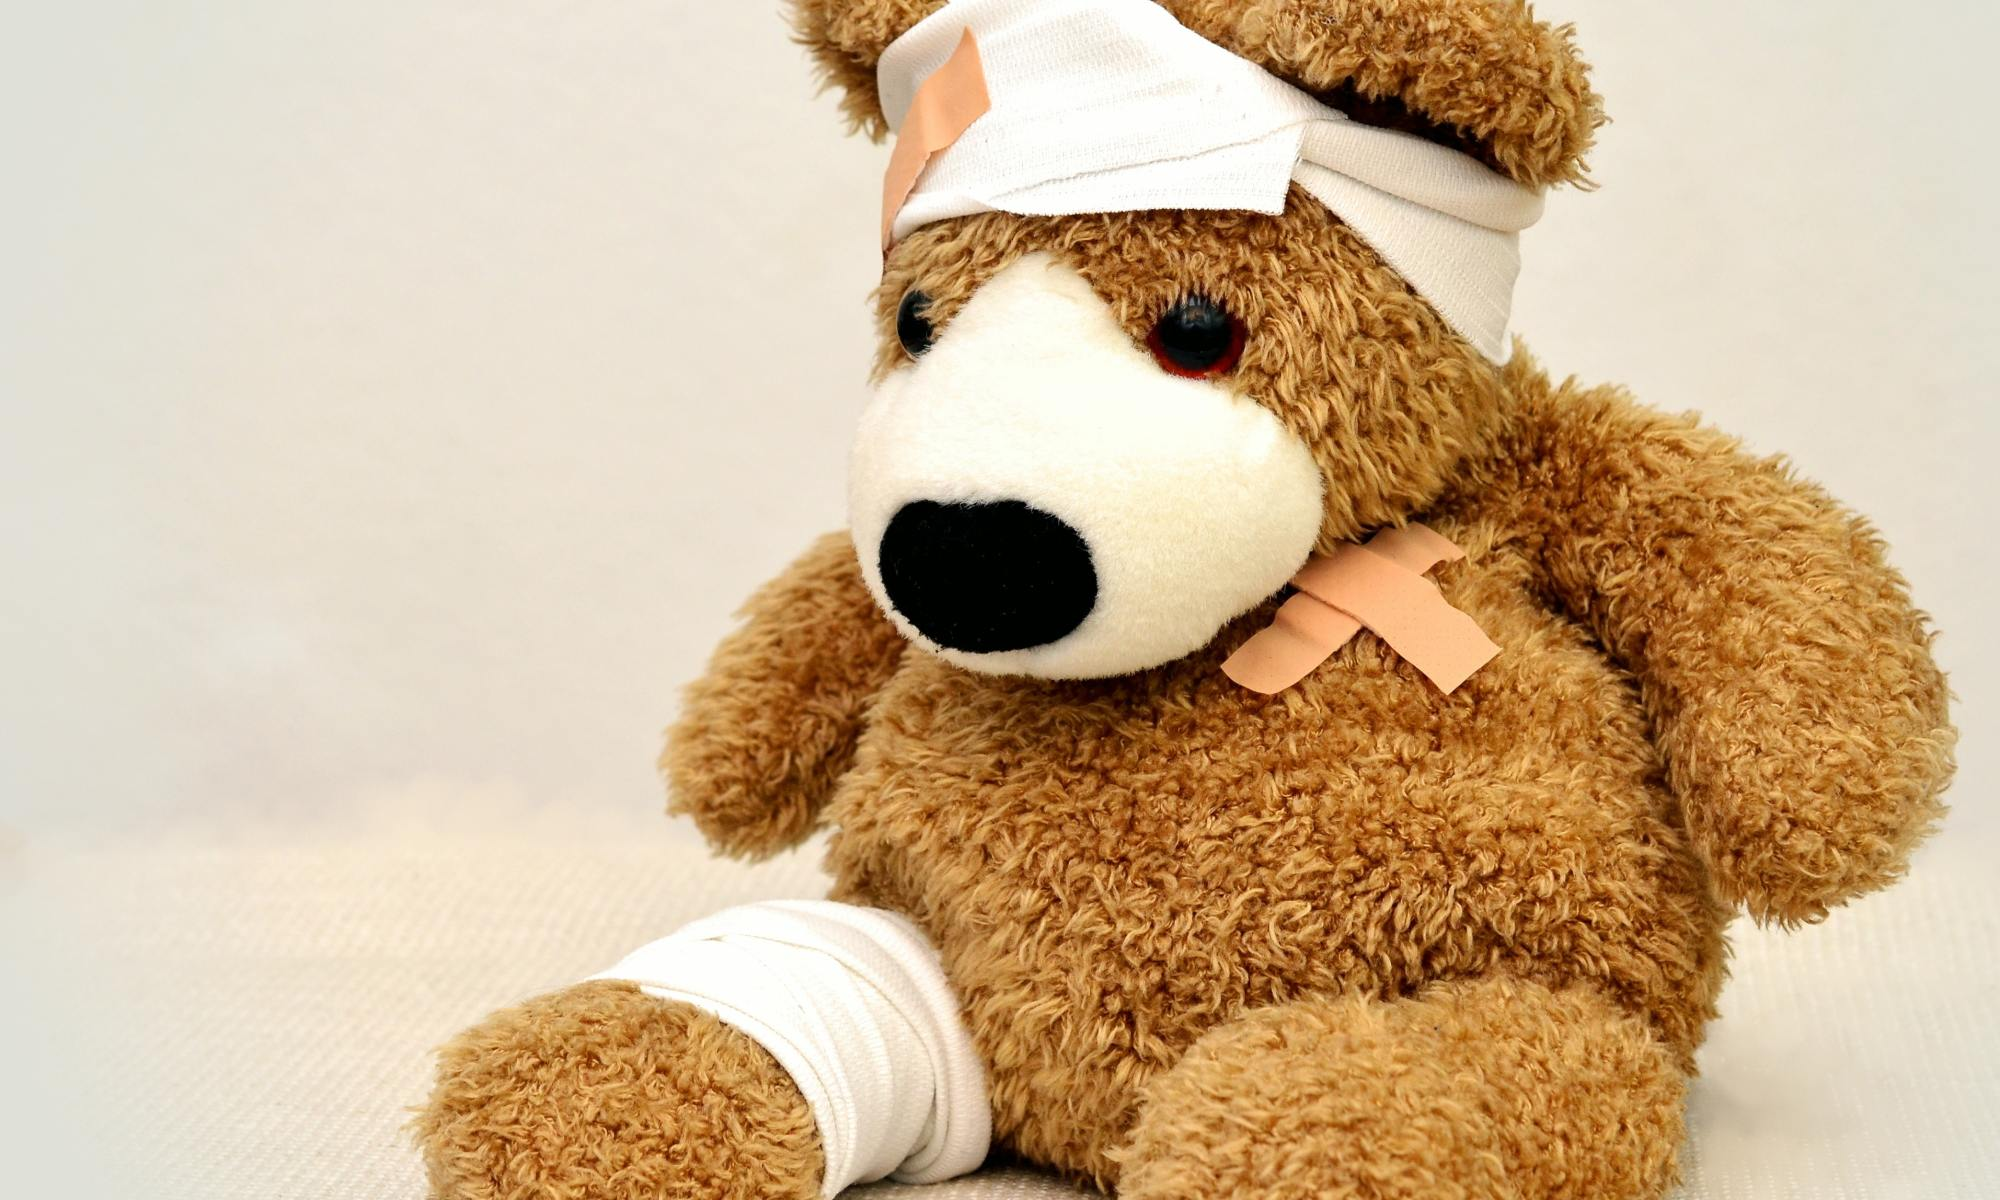 A stuffed bear toy with bandages